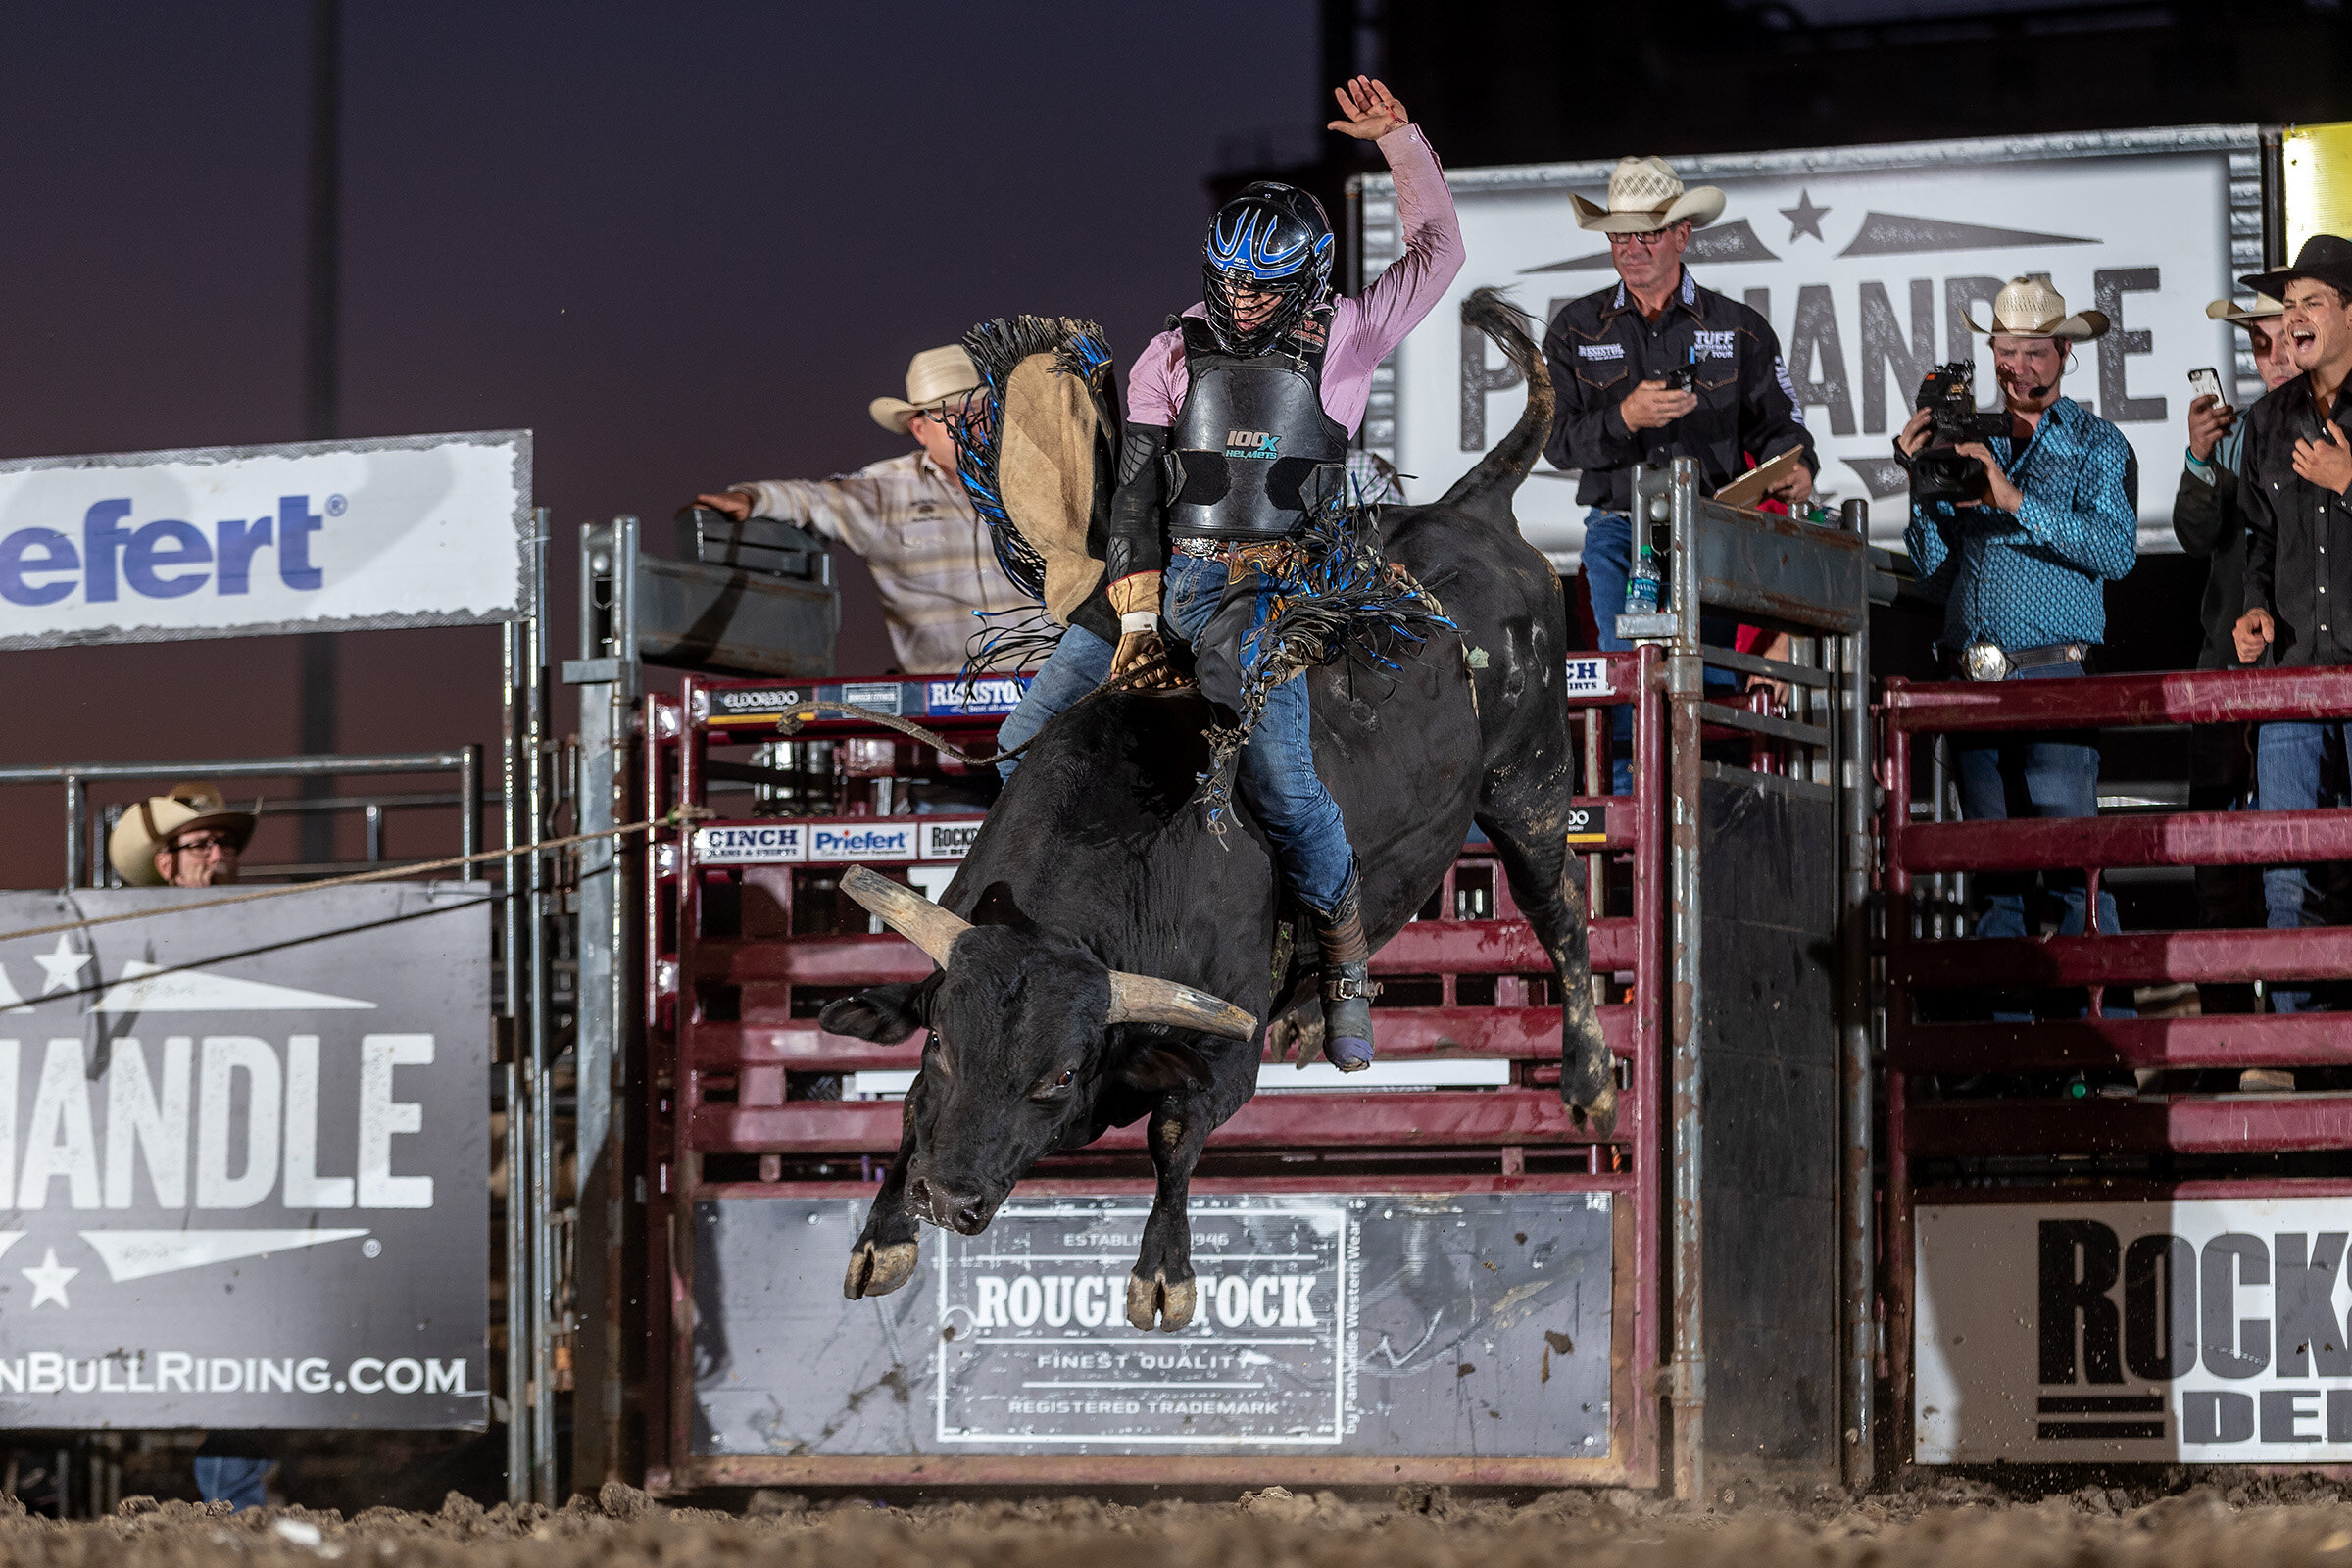 Javier Garcia enters Waterloo with 261.5, one bull behind the leader Albert LeBaron